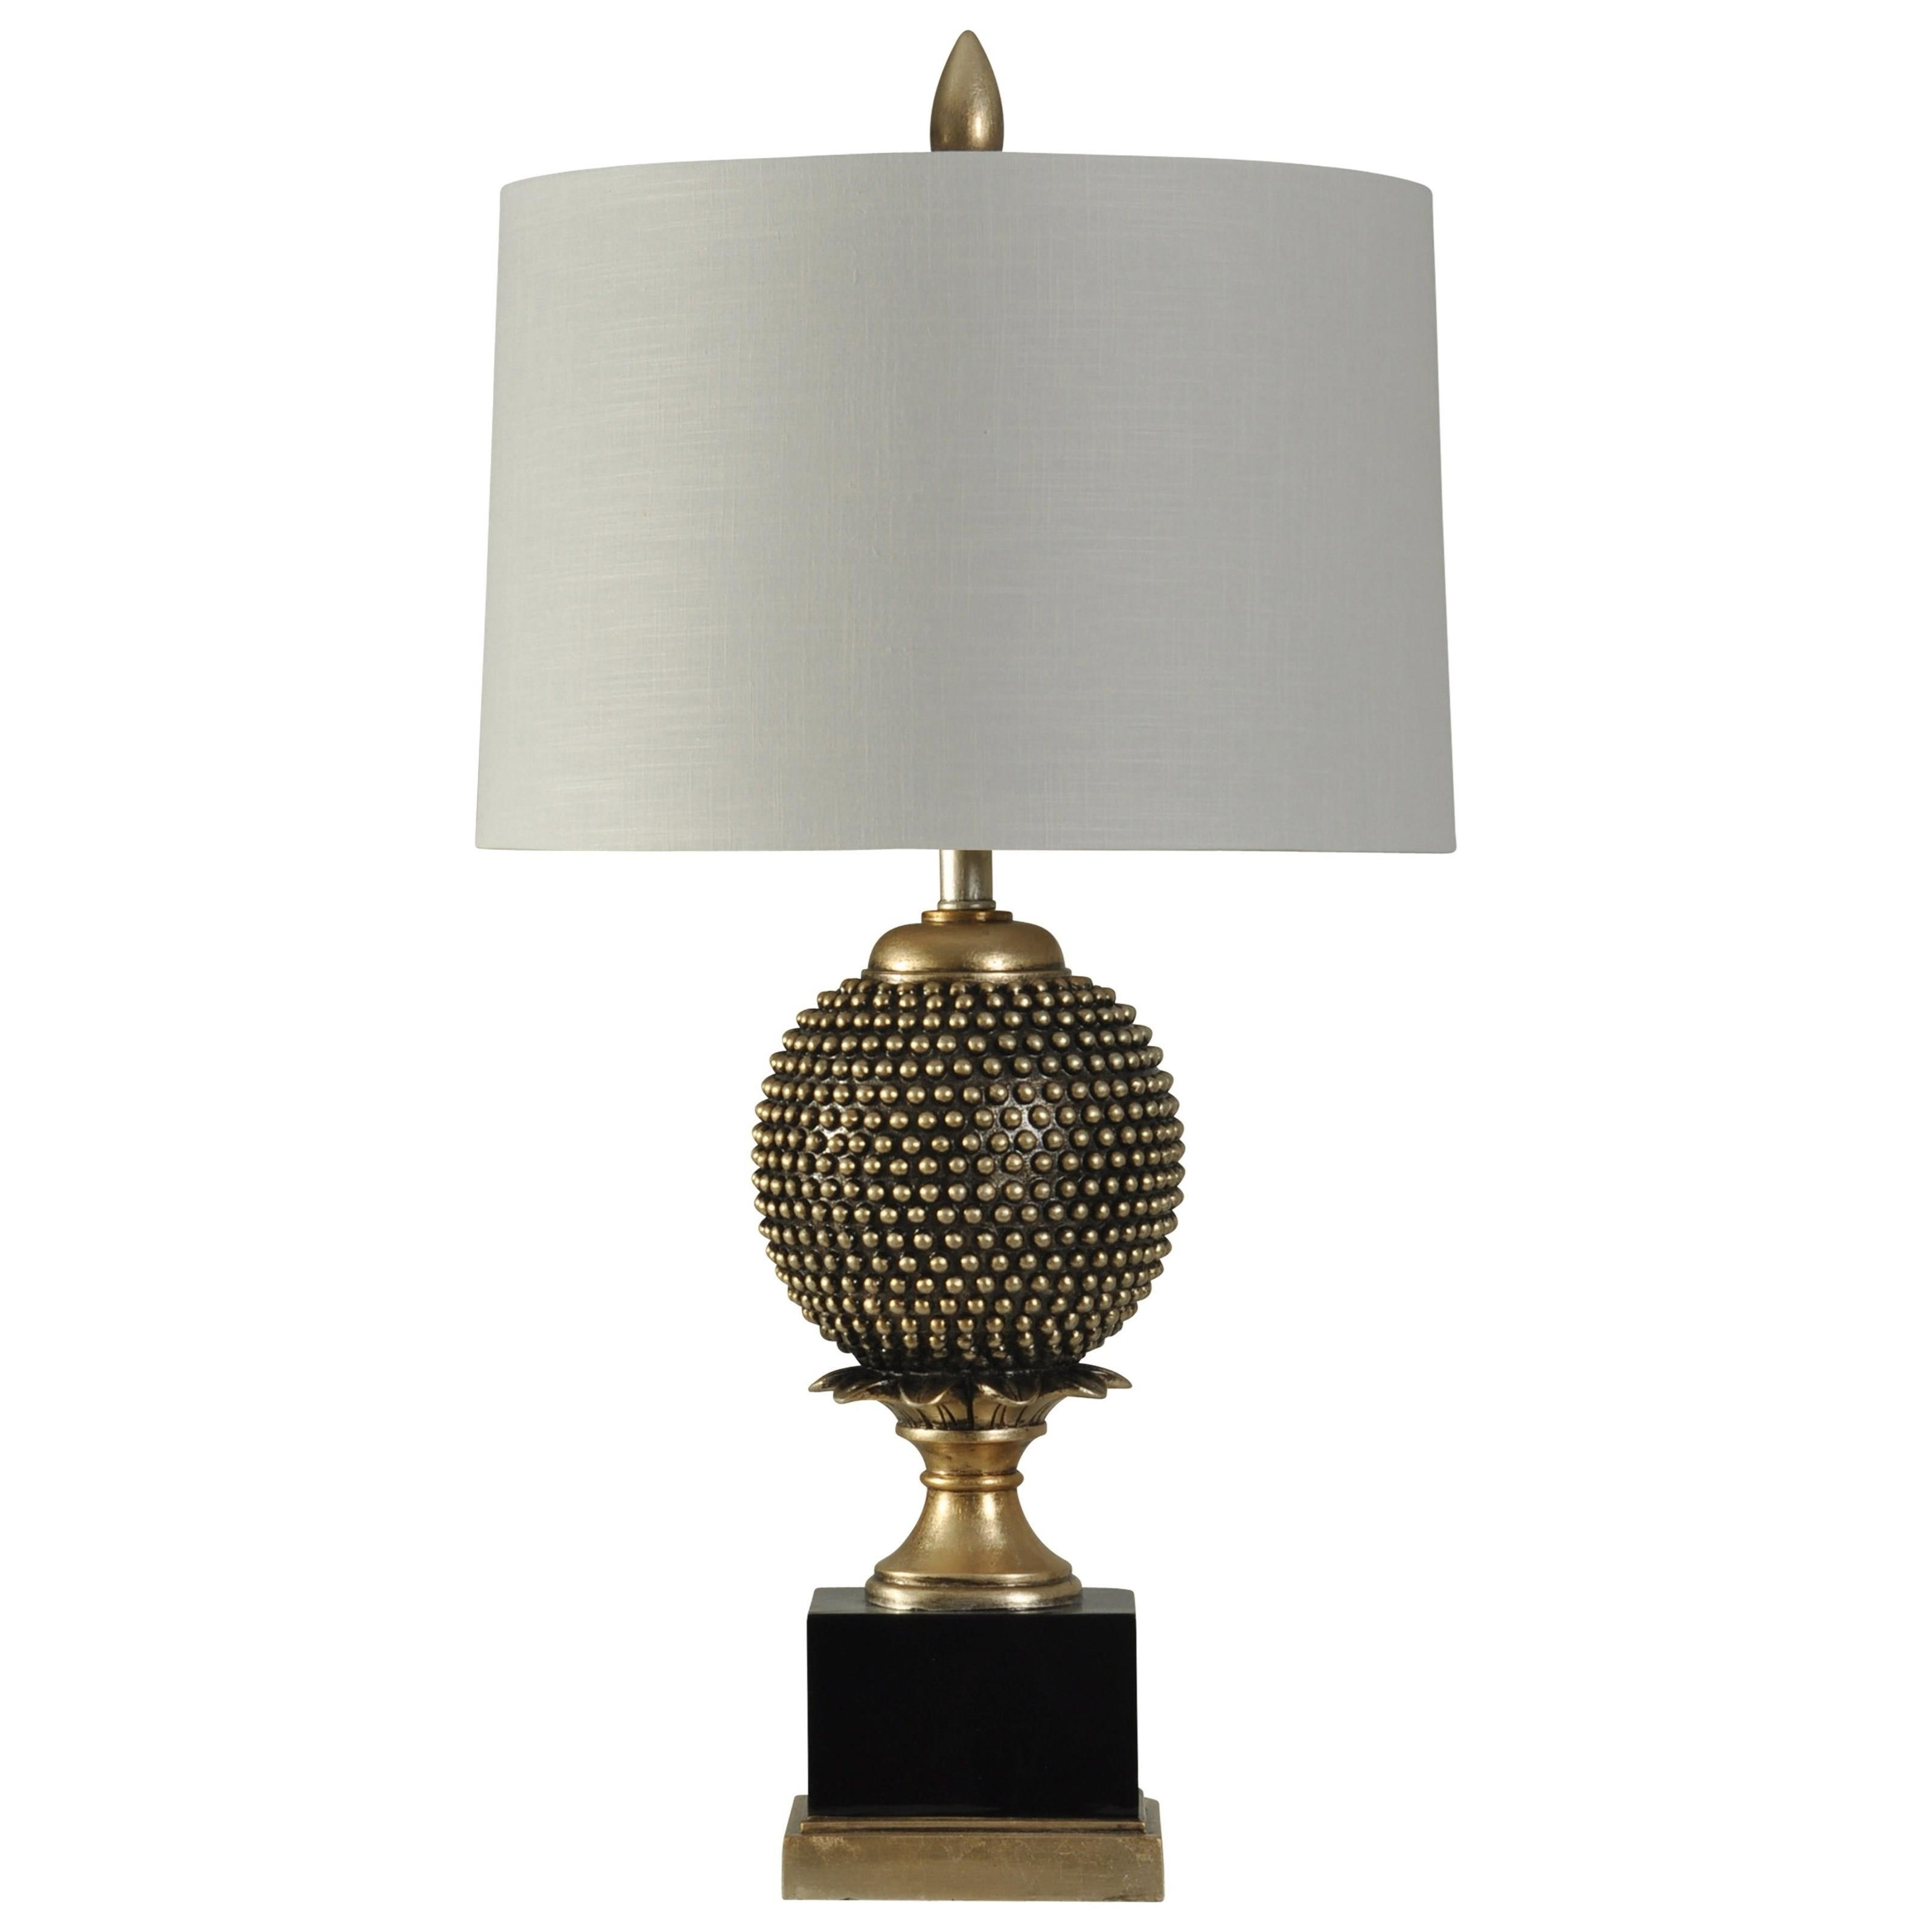 StyleCraft Lamps Traditional Table Lamp